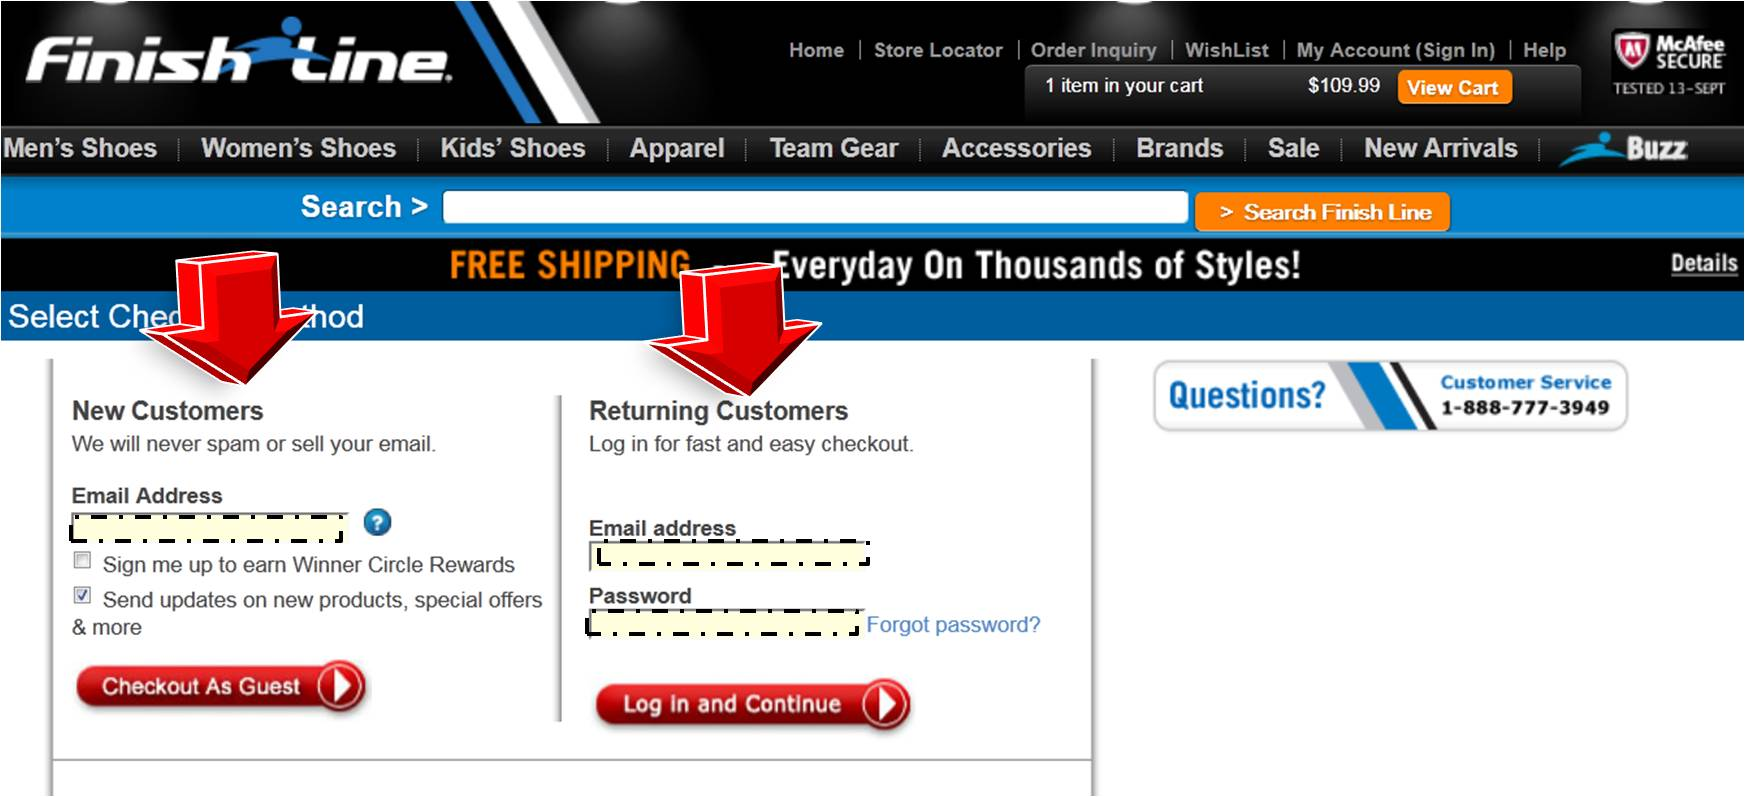 Finishline coupon code